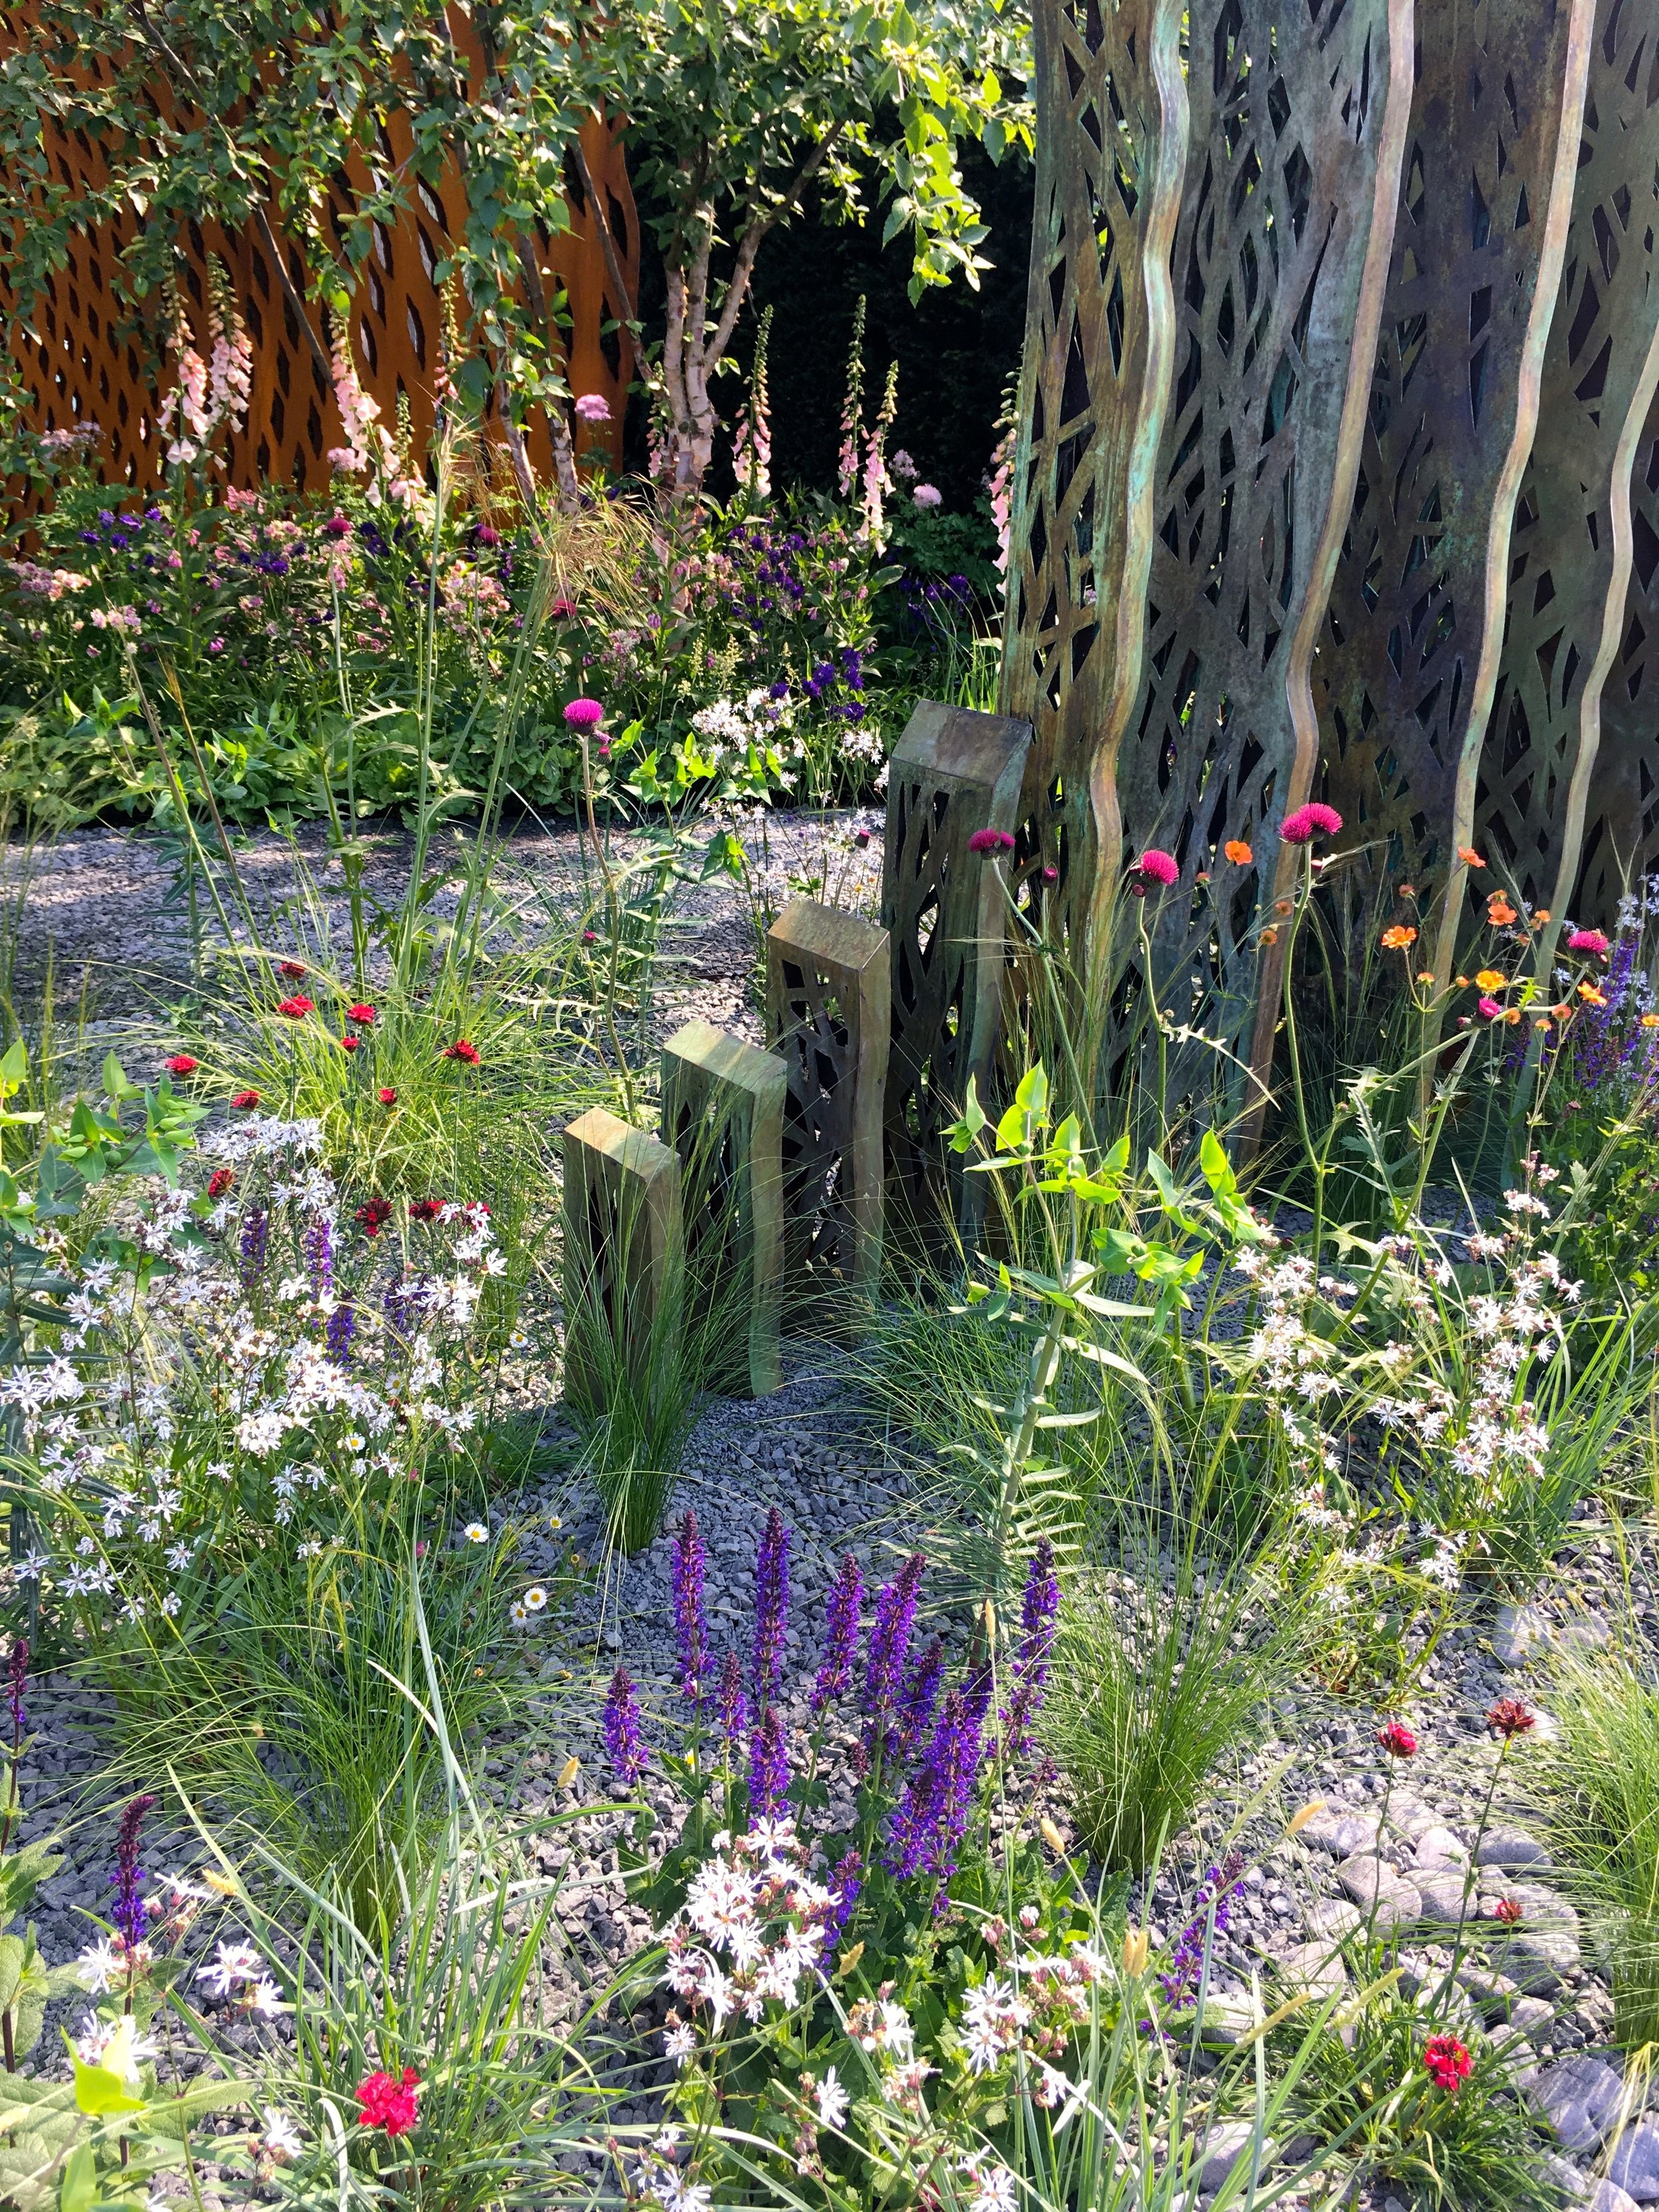 Planting in the David Harber and Savill garden at the 2018 Chelsea Flower show